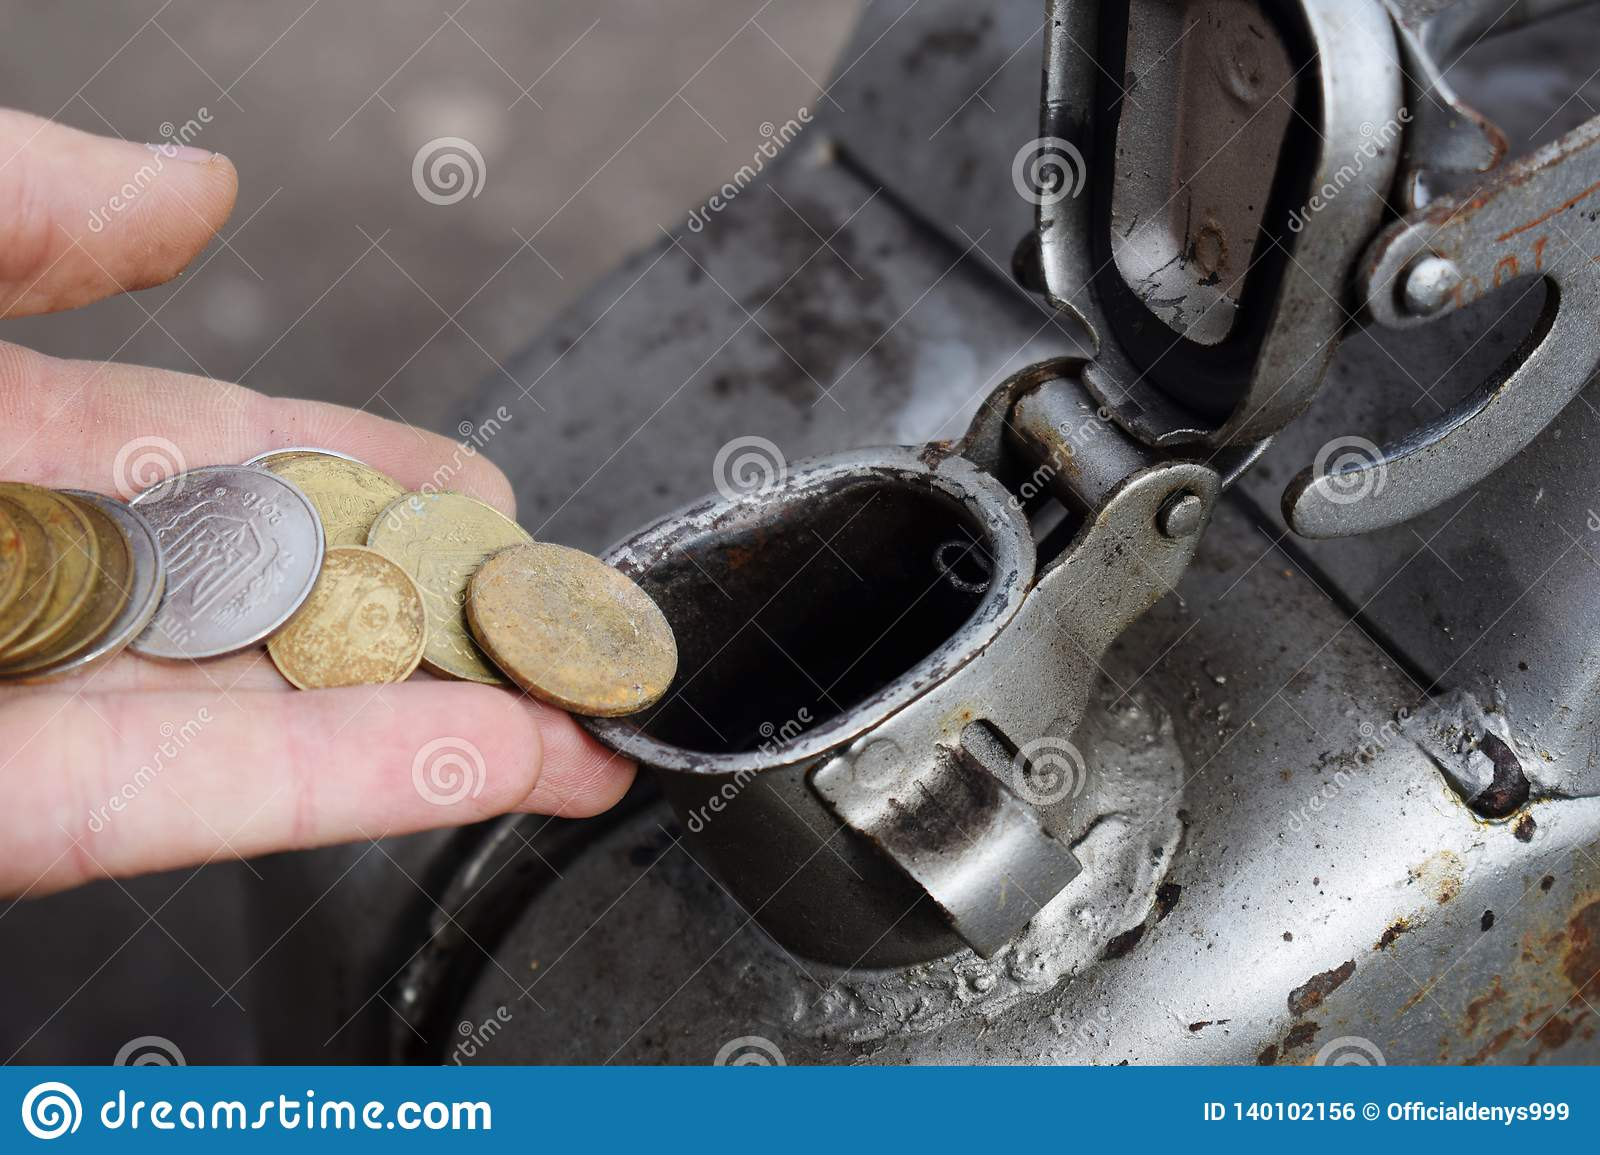 Payment for the gas, fuel, gasoline, diesel concept. Hand dropping money, coin in the can of fuel